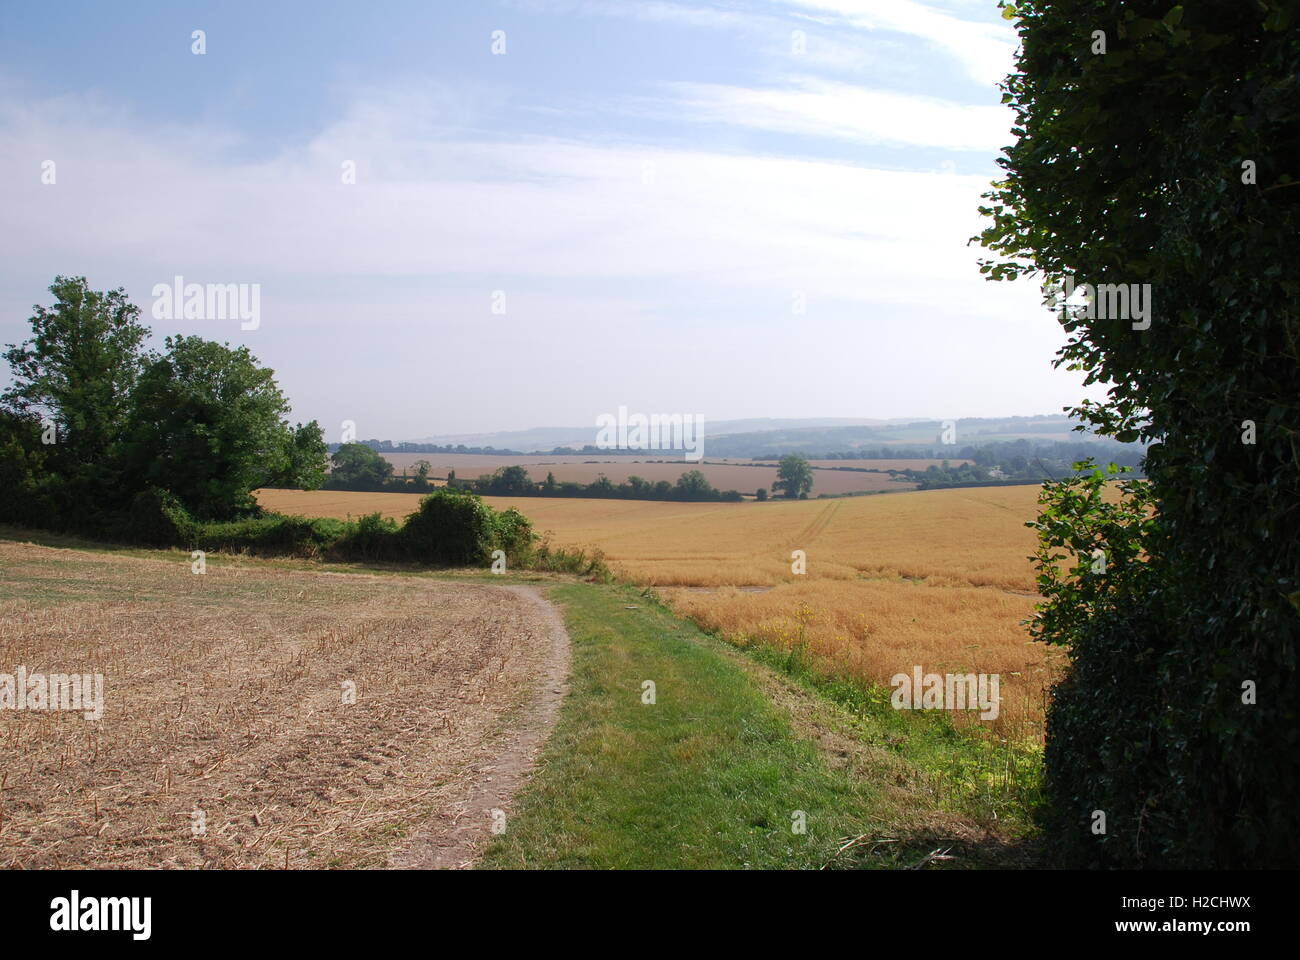 Meon valley view - Stock Image